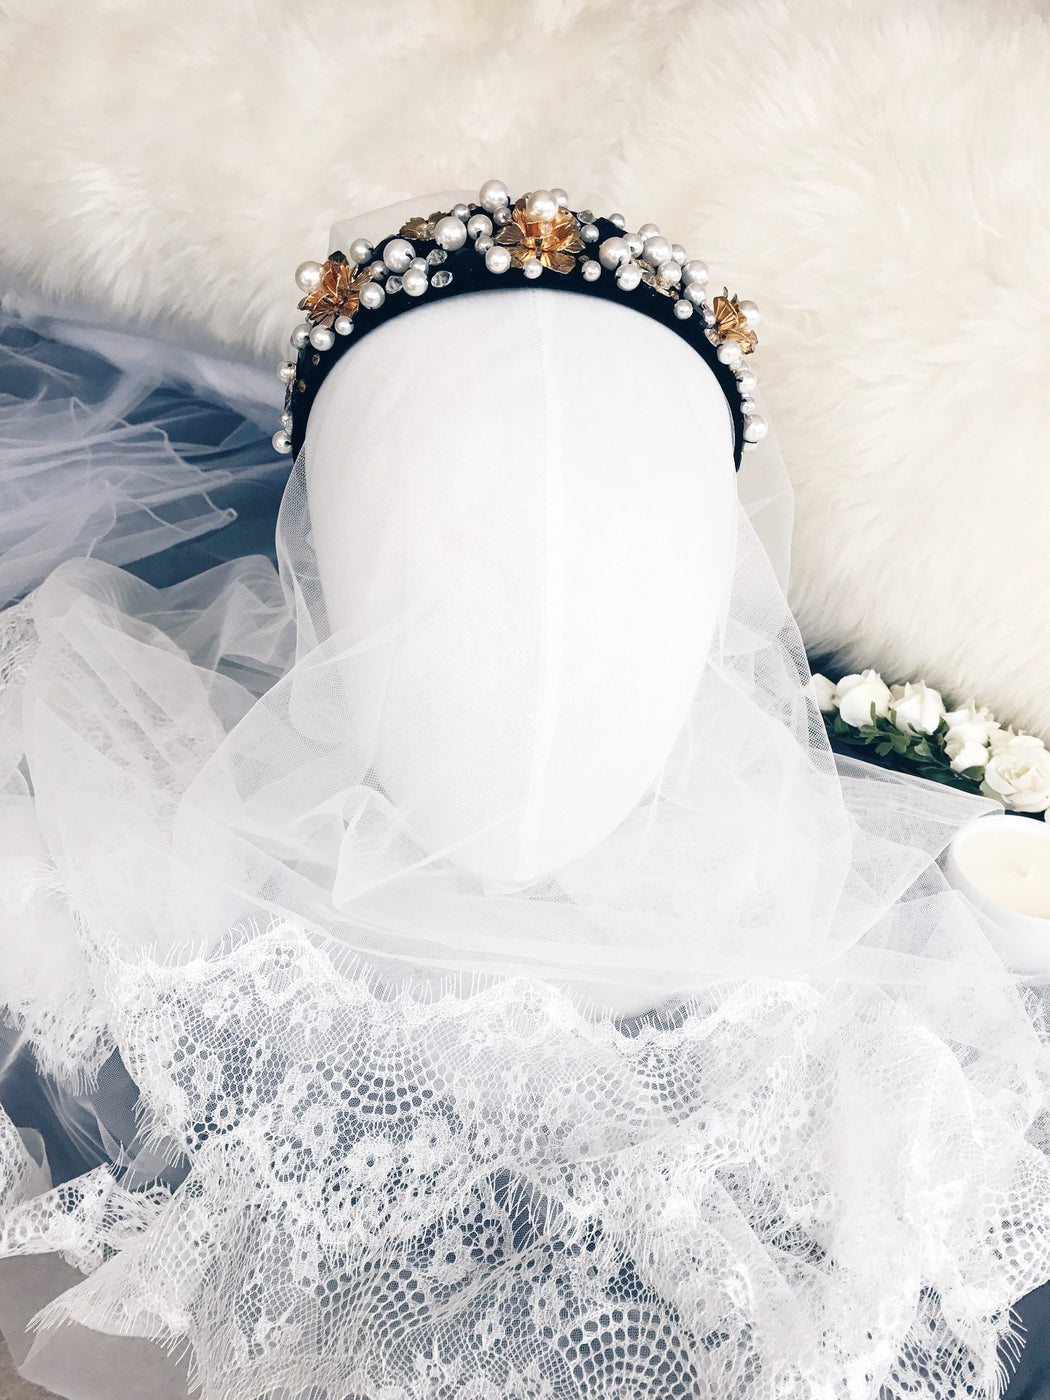 Blair waldorf jenny humphrey Embellished pearl Headband hairband gossip girl hair accessory formal bridal luxe hairstyle